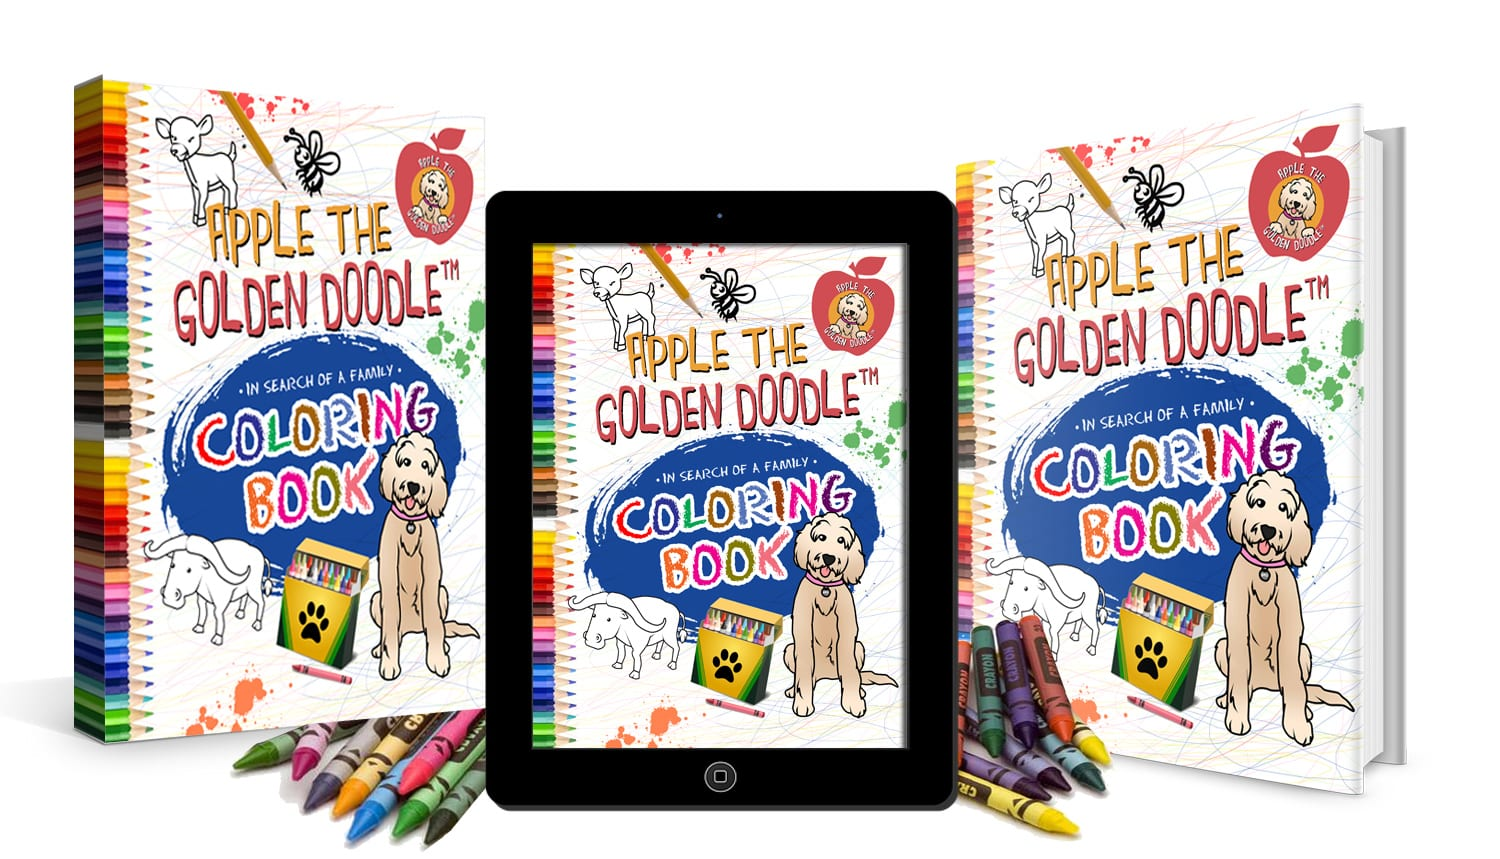 Apple the Golden Doodle In Search of a Family Coloring Book